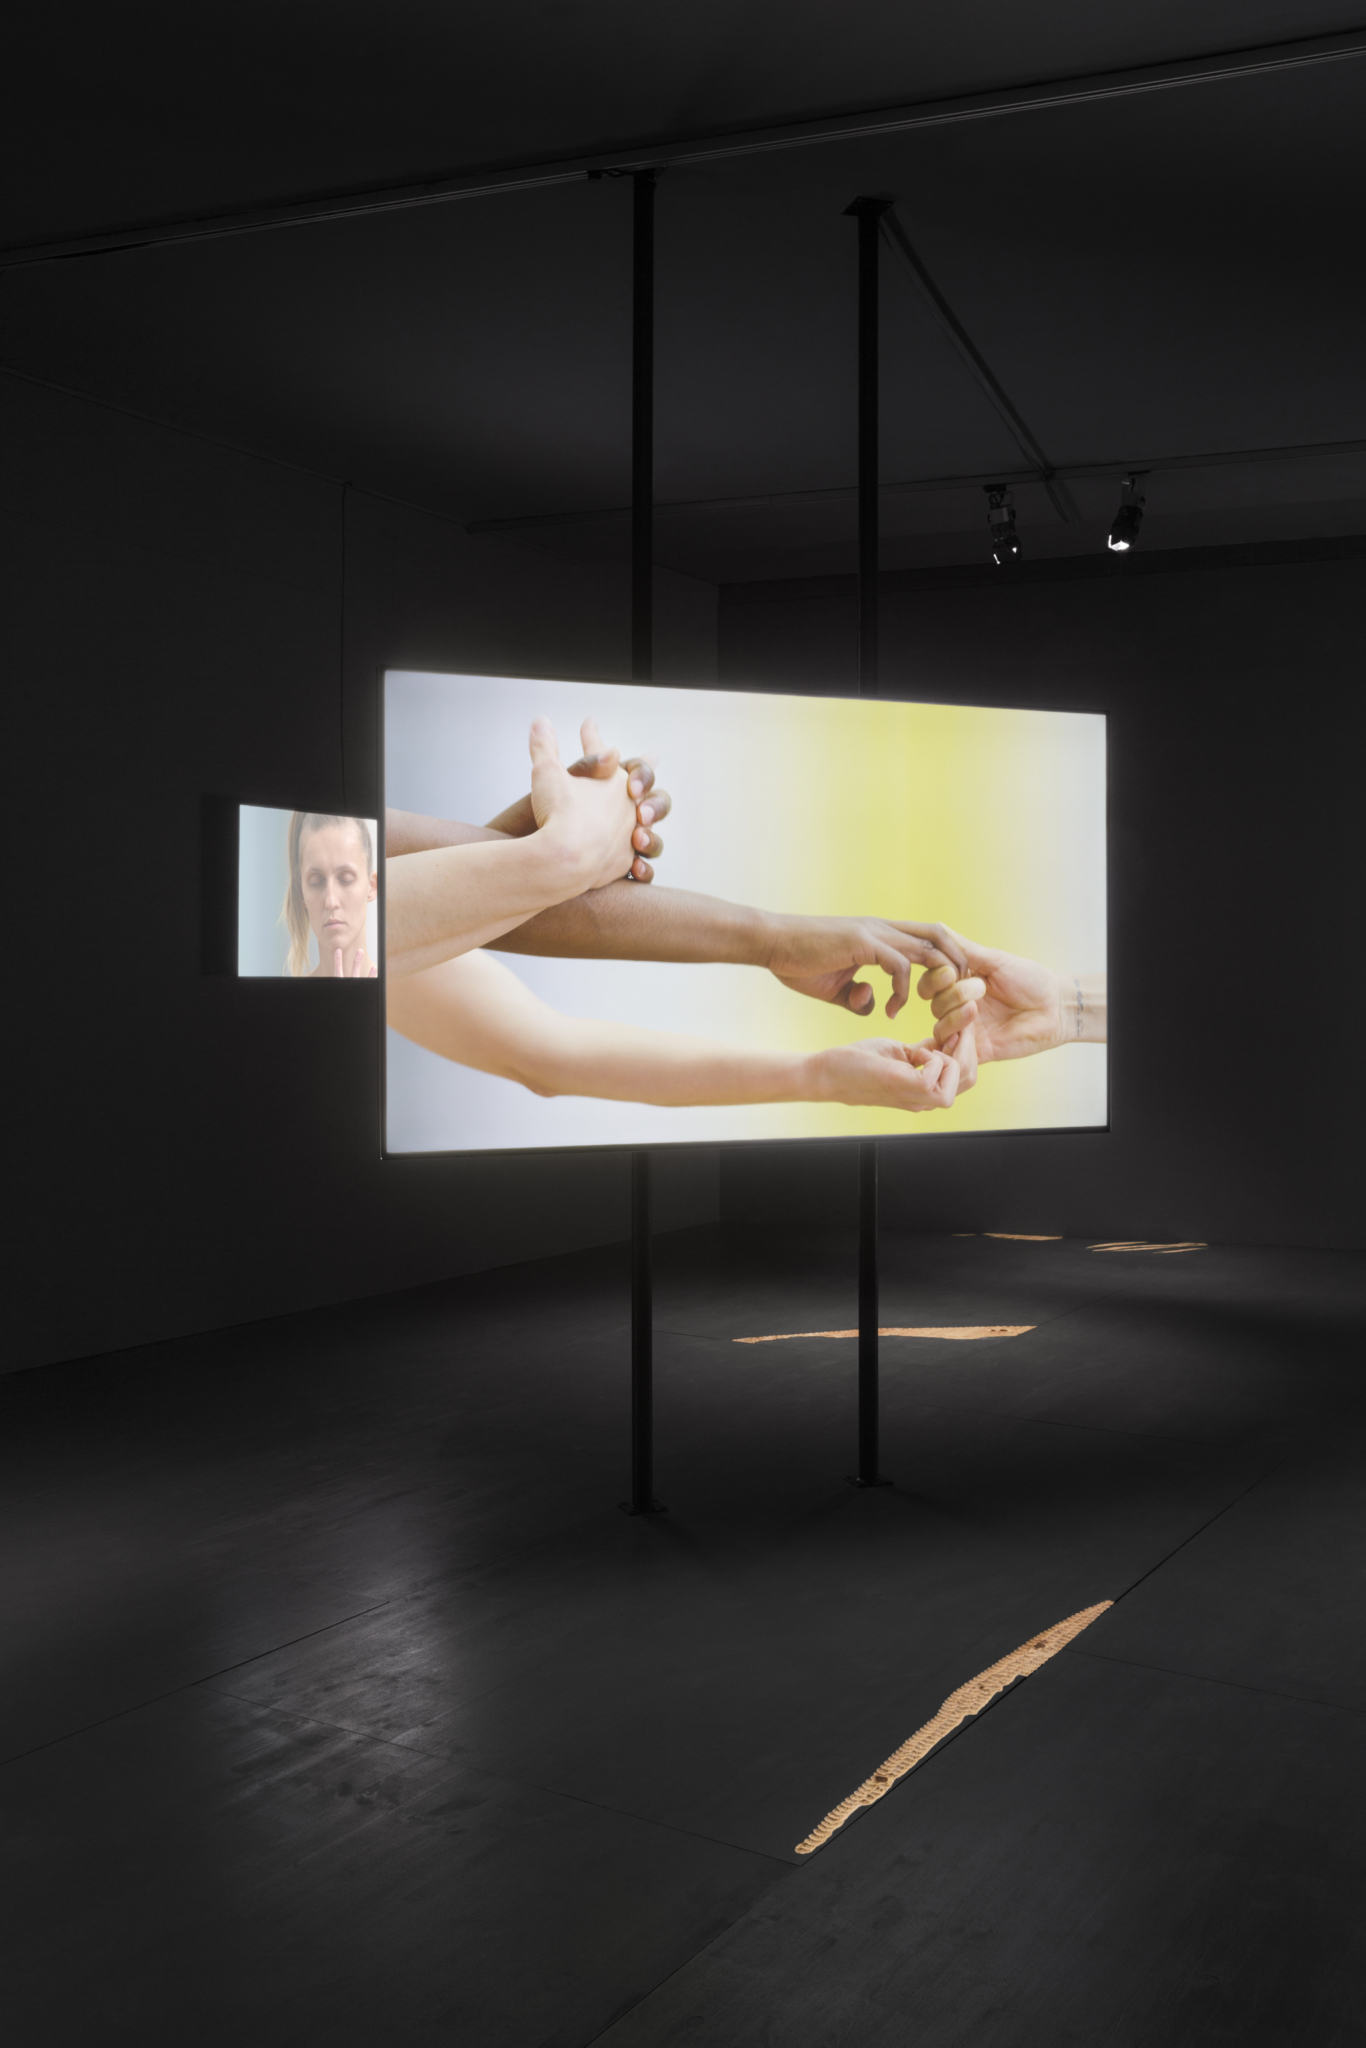 "Katarina Zdjelar, Not a Pillar Not a Pile (Tanz für Dore Hoyer), 2017. Multichannel audio-video work and a floor sculpture, 5'50"" loop. Installation view details 'Prix de Rome 2017', Kunsthal Rotterdam, 2017"